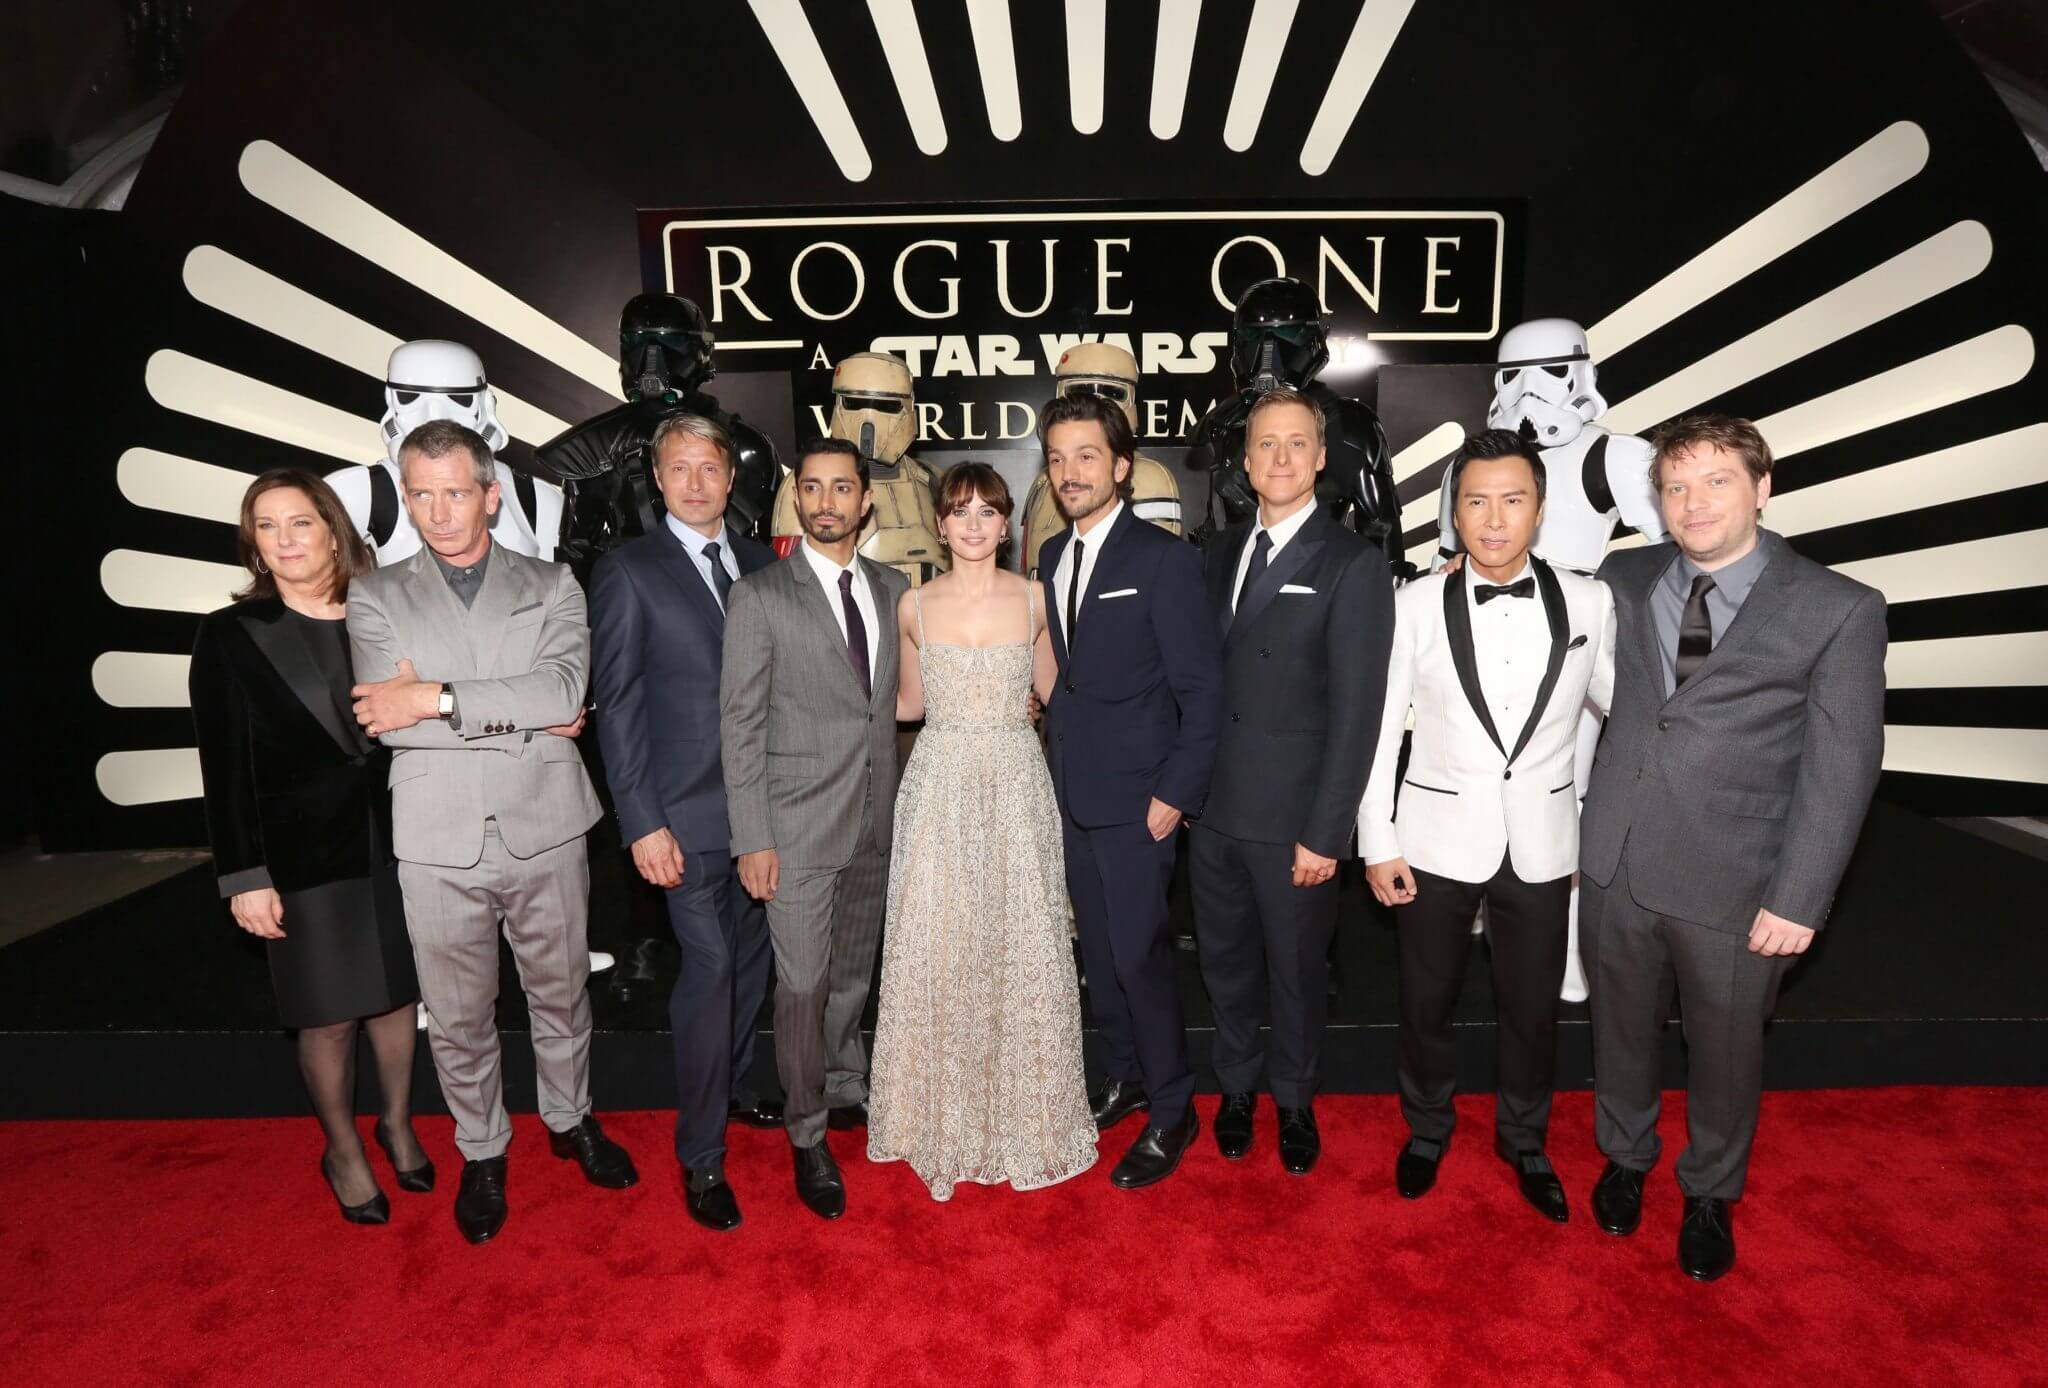 Rogue one premiere 1